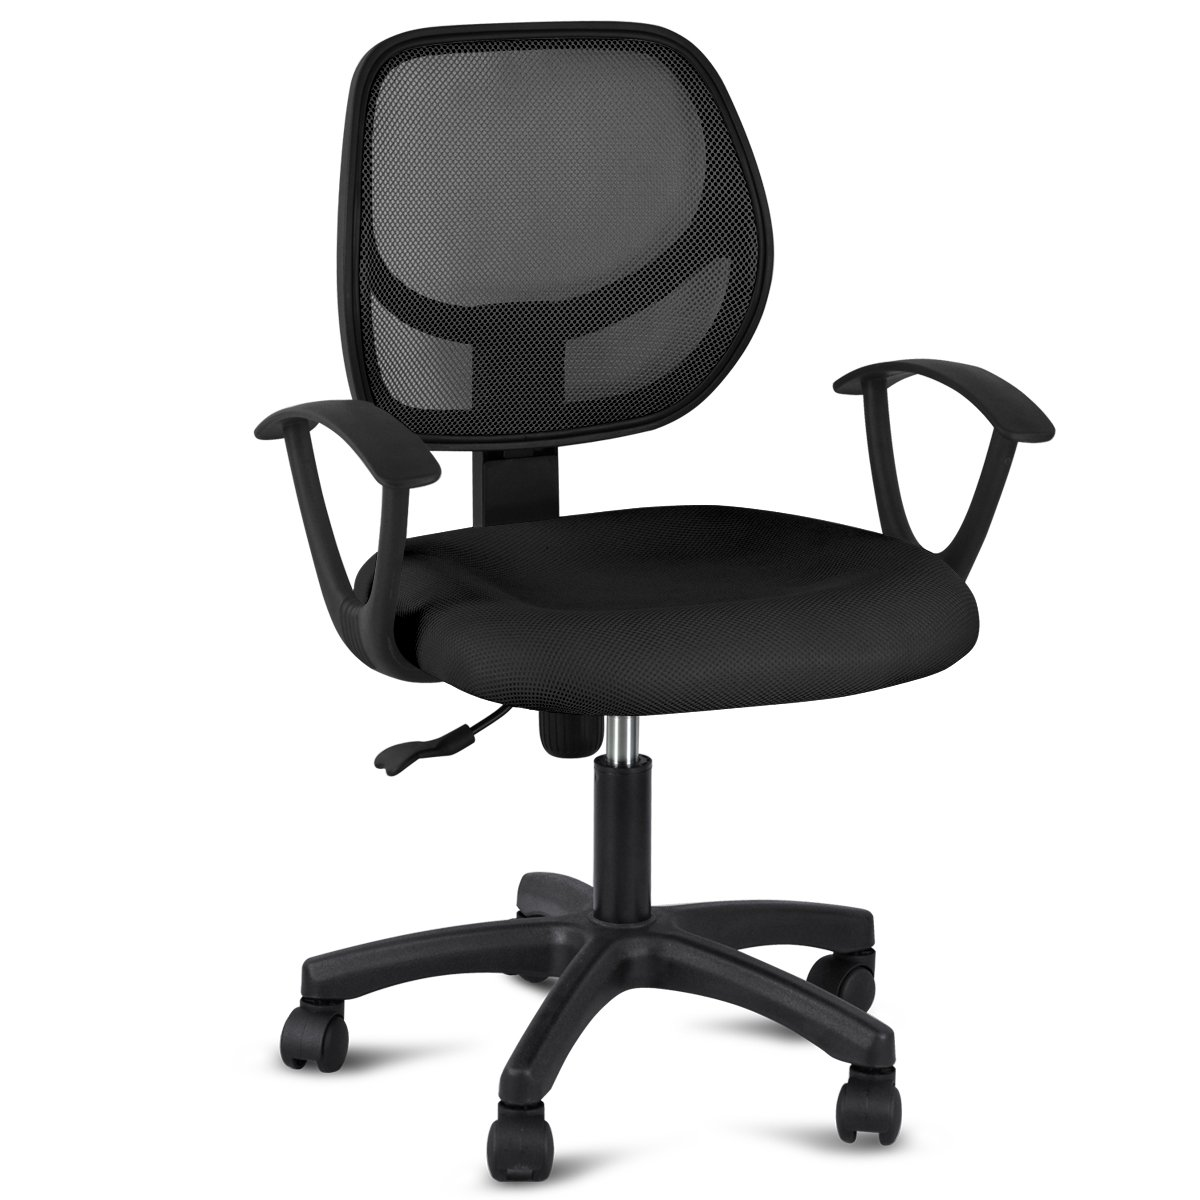 Best office chair 2016 - Chinkyboo Adjustable Sixbros Office Chair Black